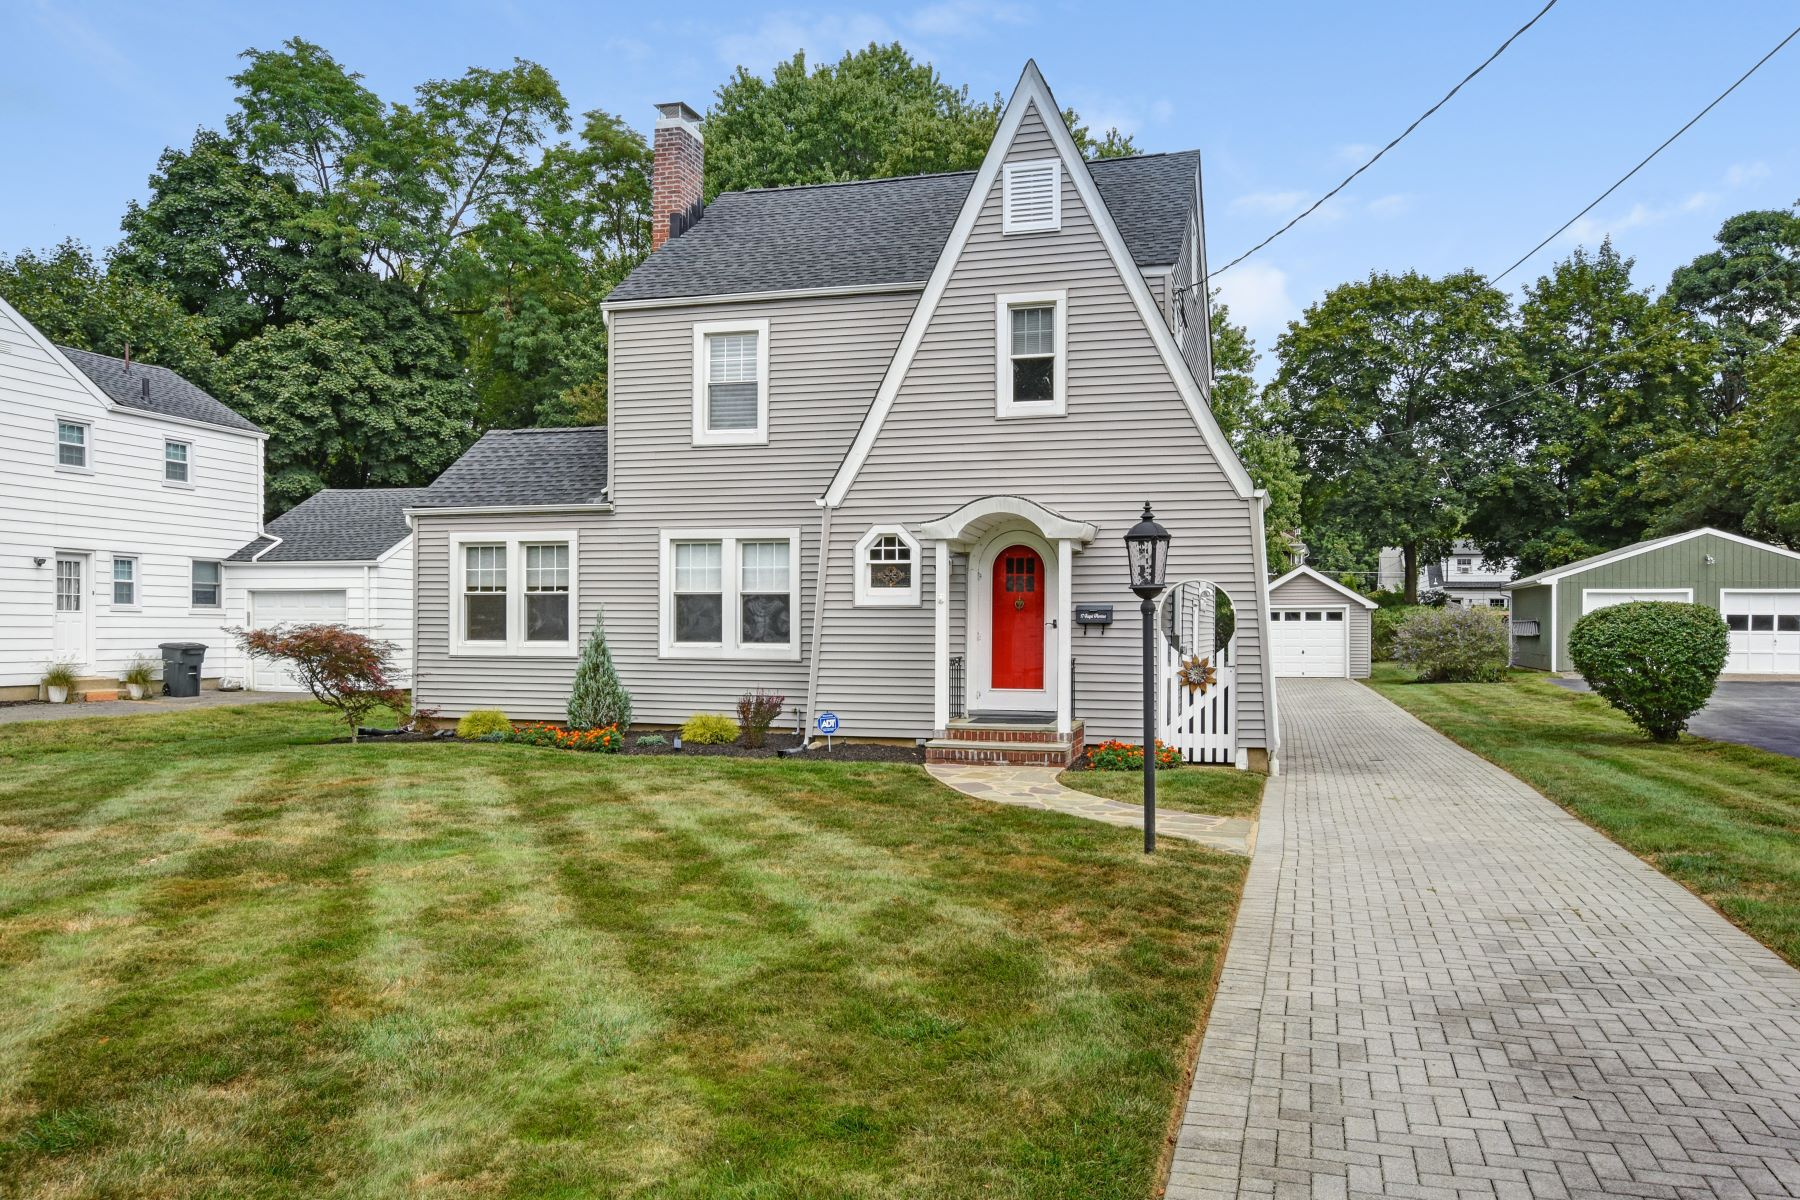 Single Family Homes for Sale at Charming Colonial Home 17 Jaqui Avenue Morris Plains, New Jersey 07950 United States